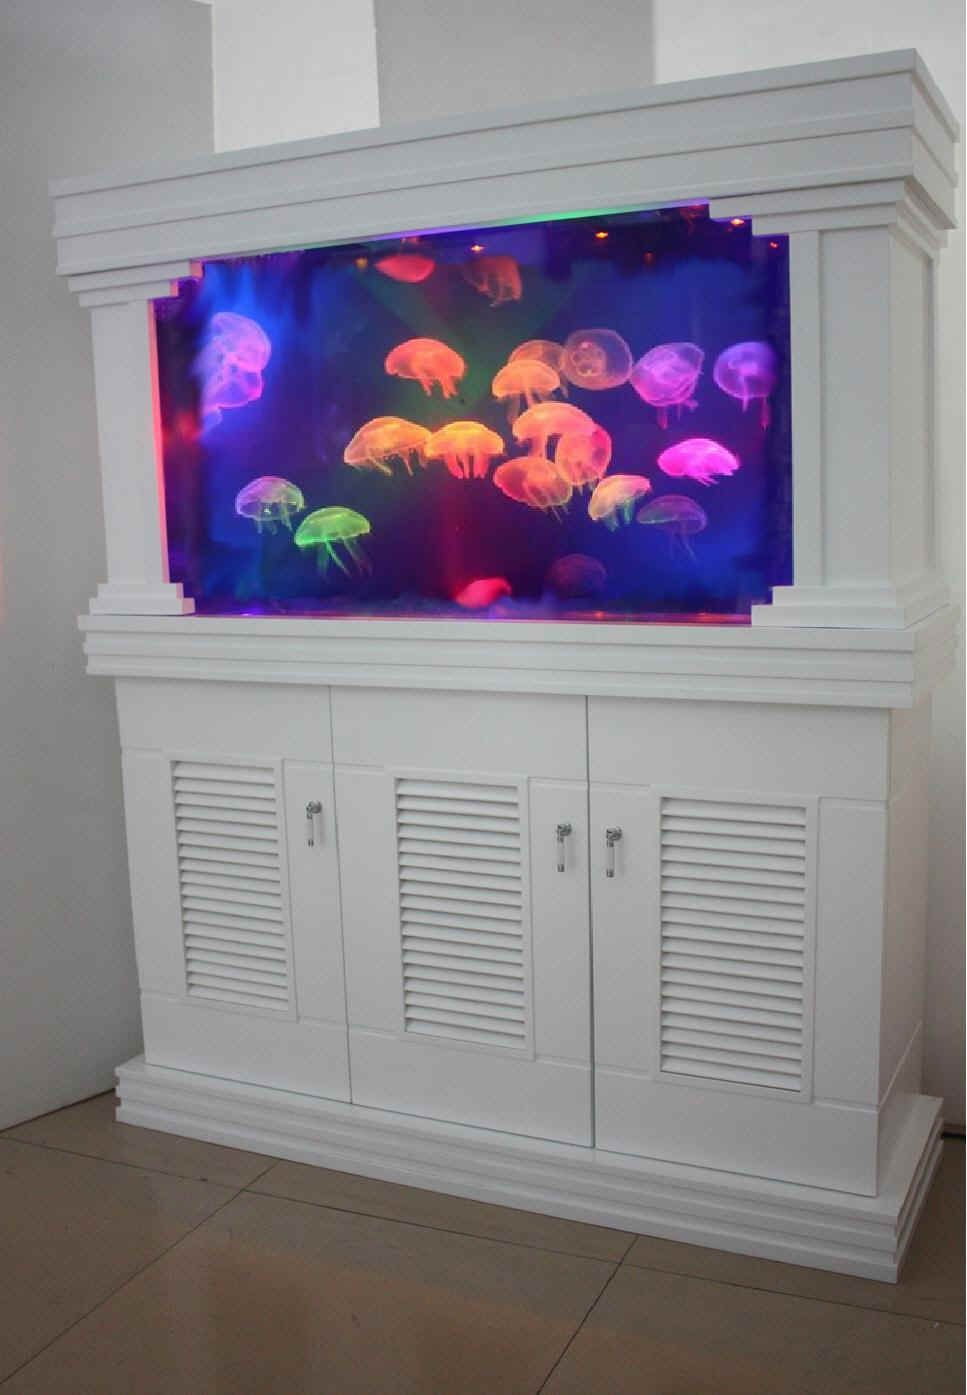 Aquarium fish tank game - Built In Home Jelly Fish Aquarium How Cool This Would Be Awesome In A Downstairs Game